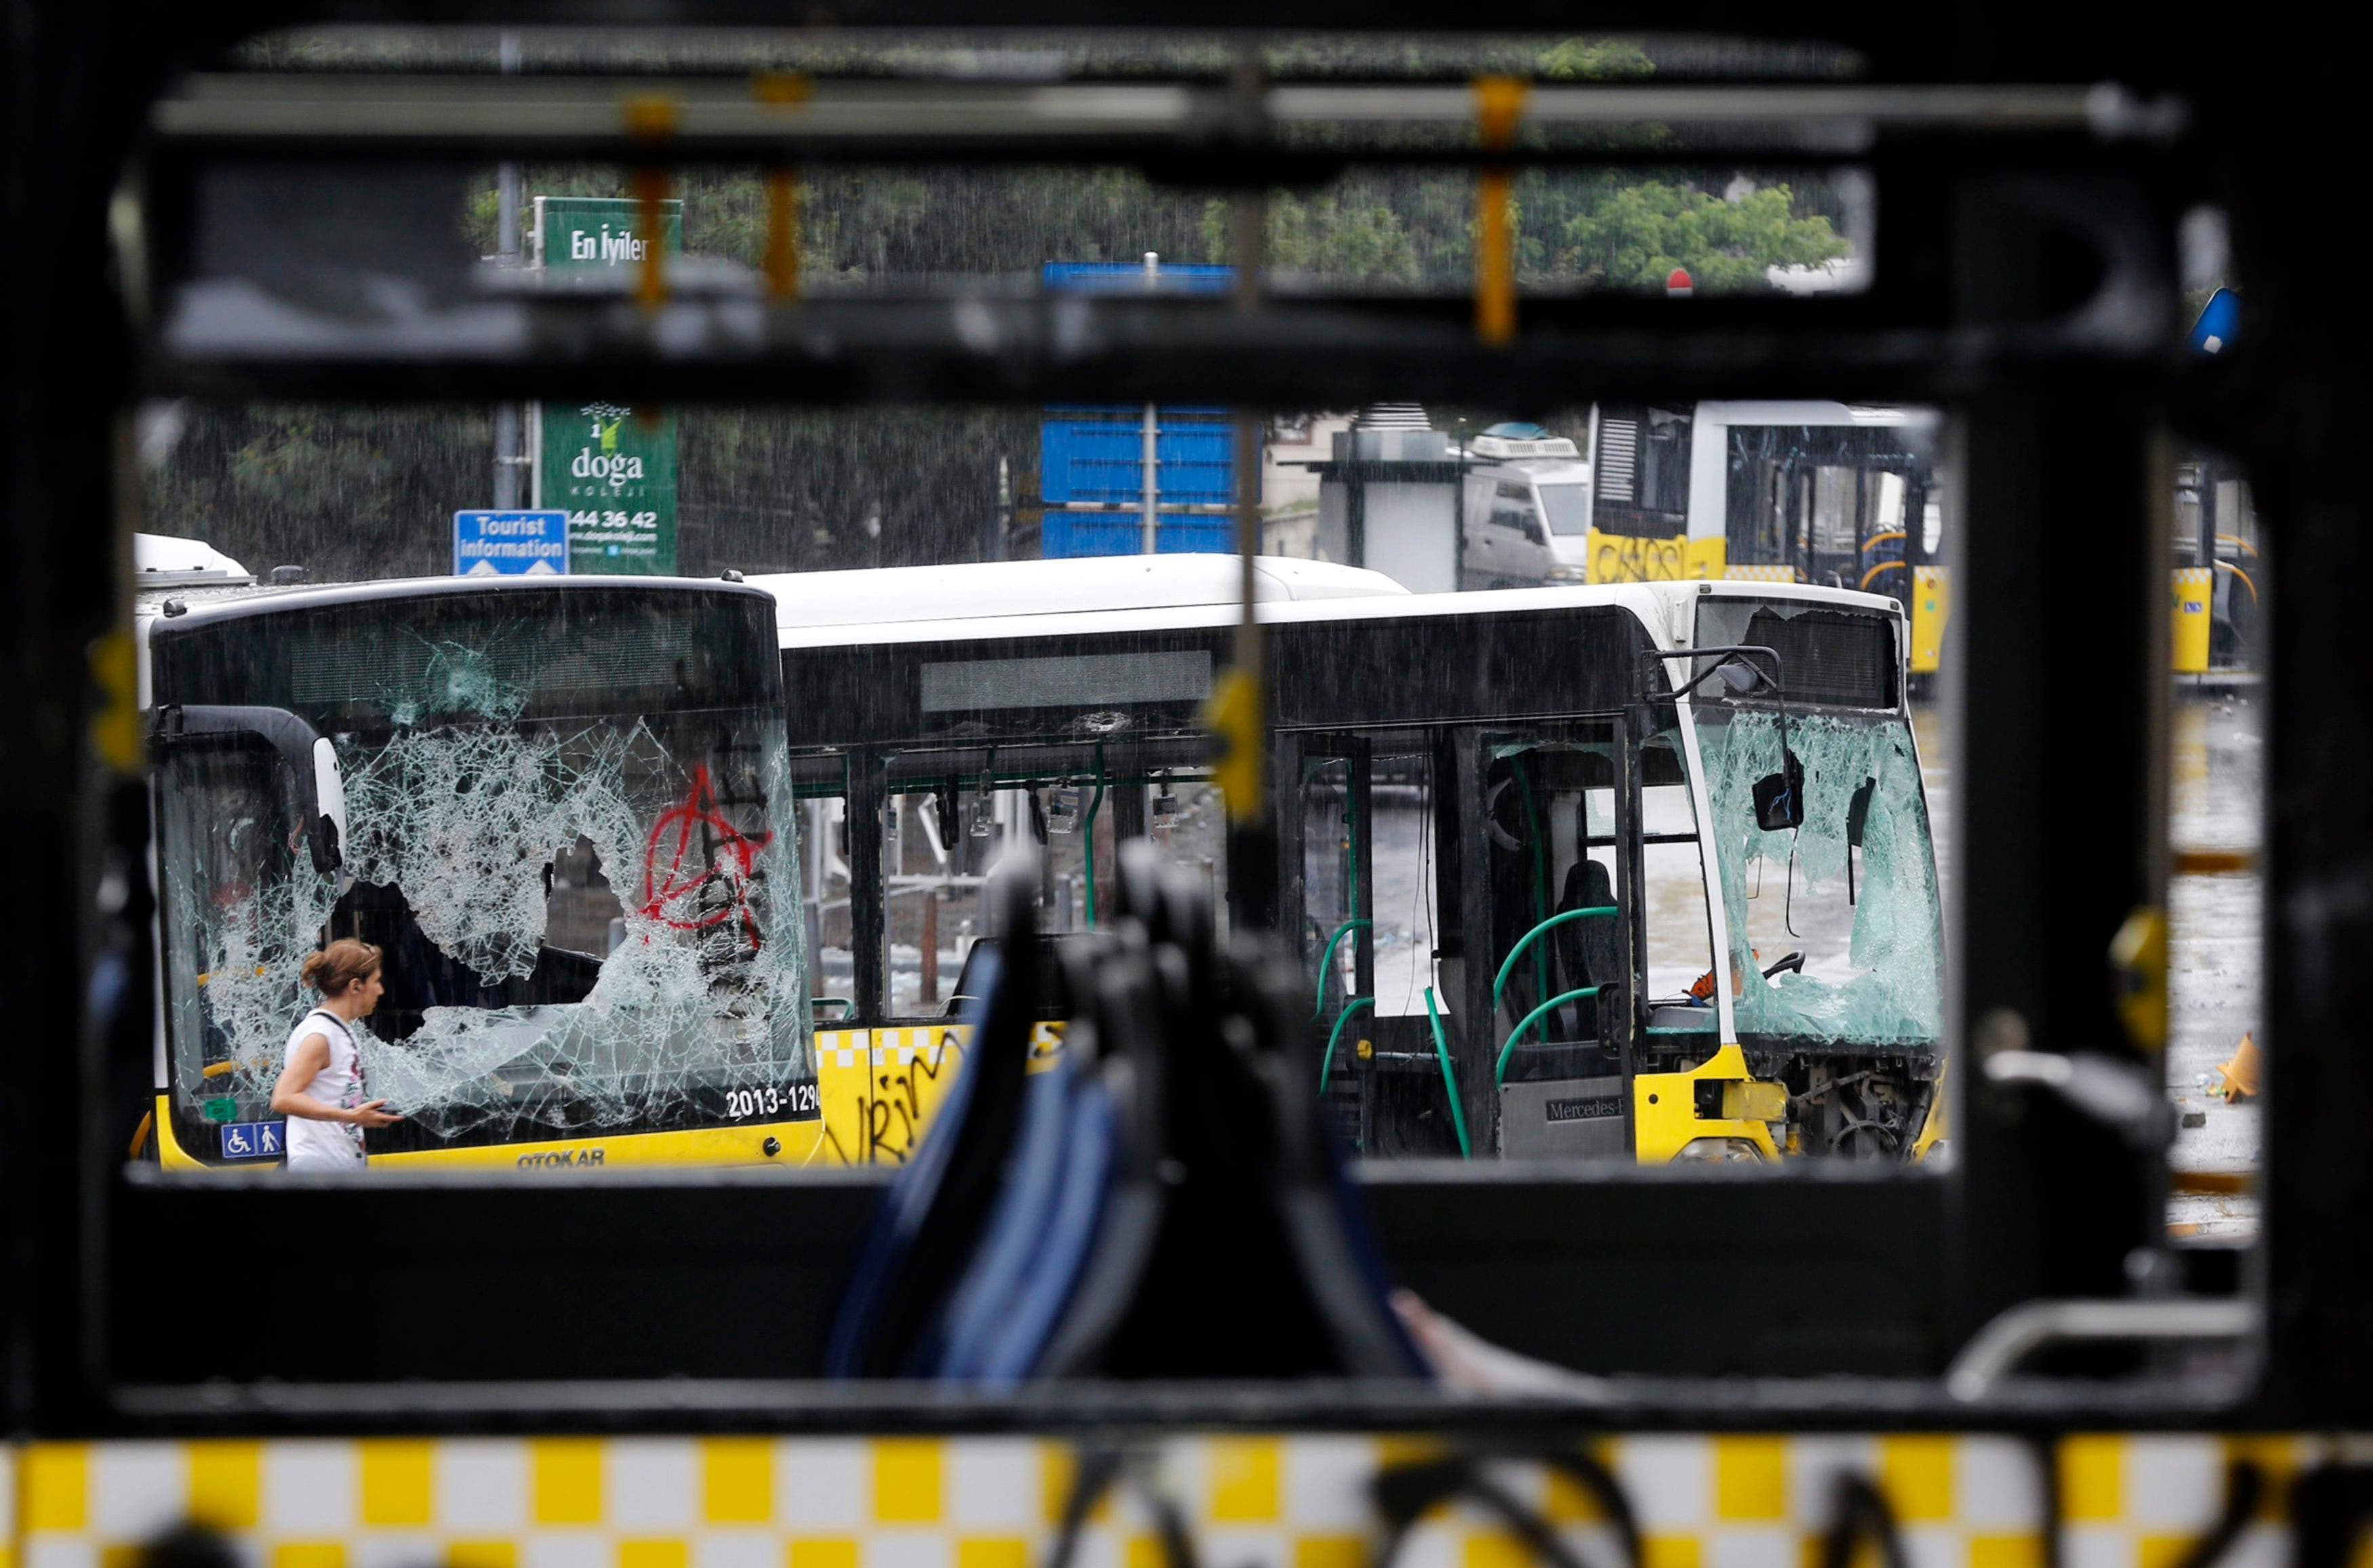 Damaged buses are seen in Taksim where police and anti-government protesters clashed in central Istanbul June 2, 2013. (Reuters)